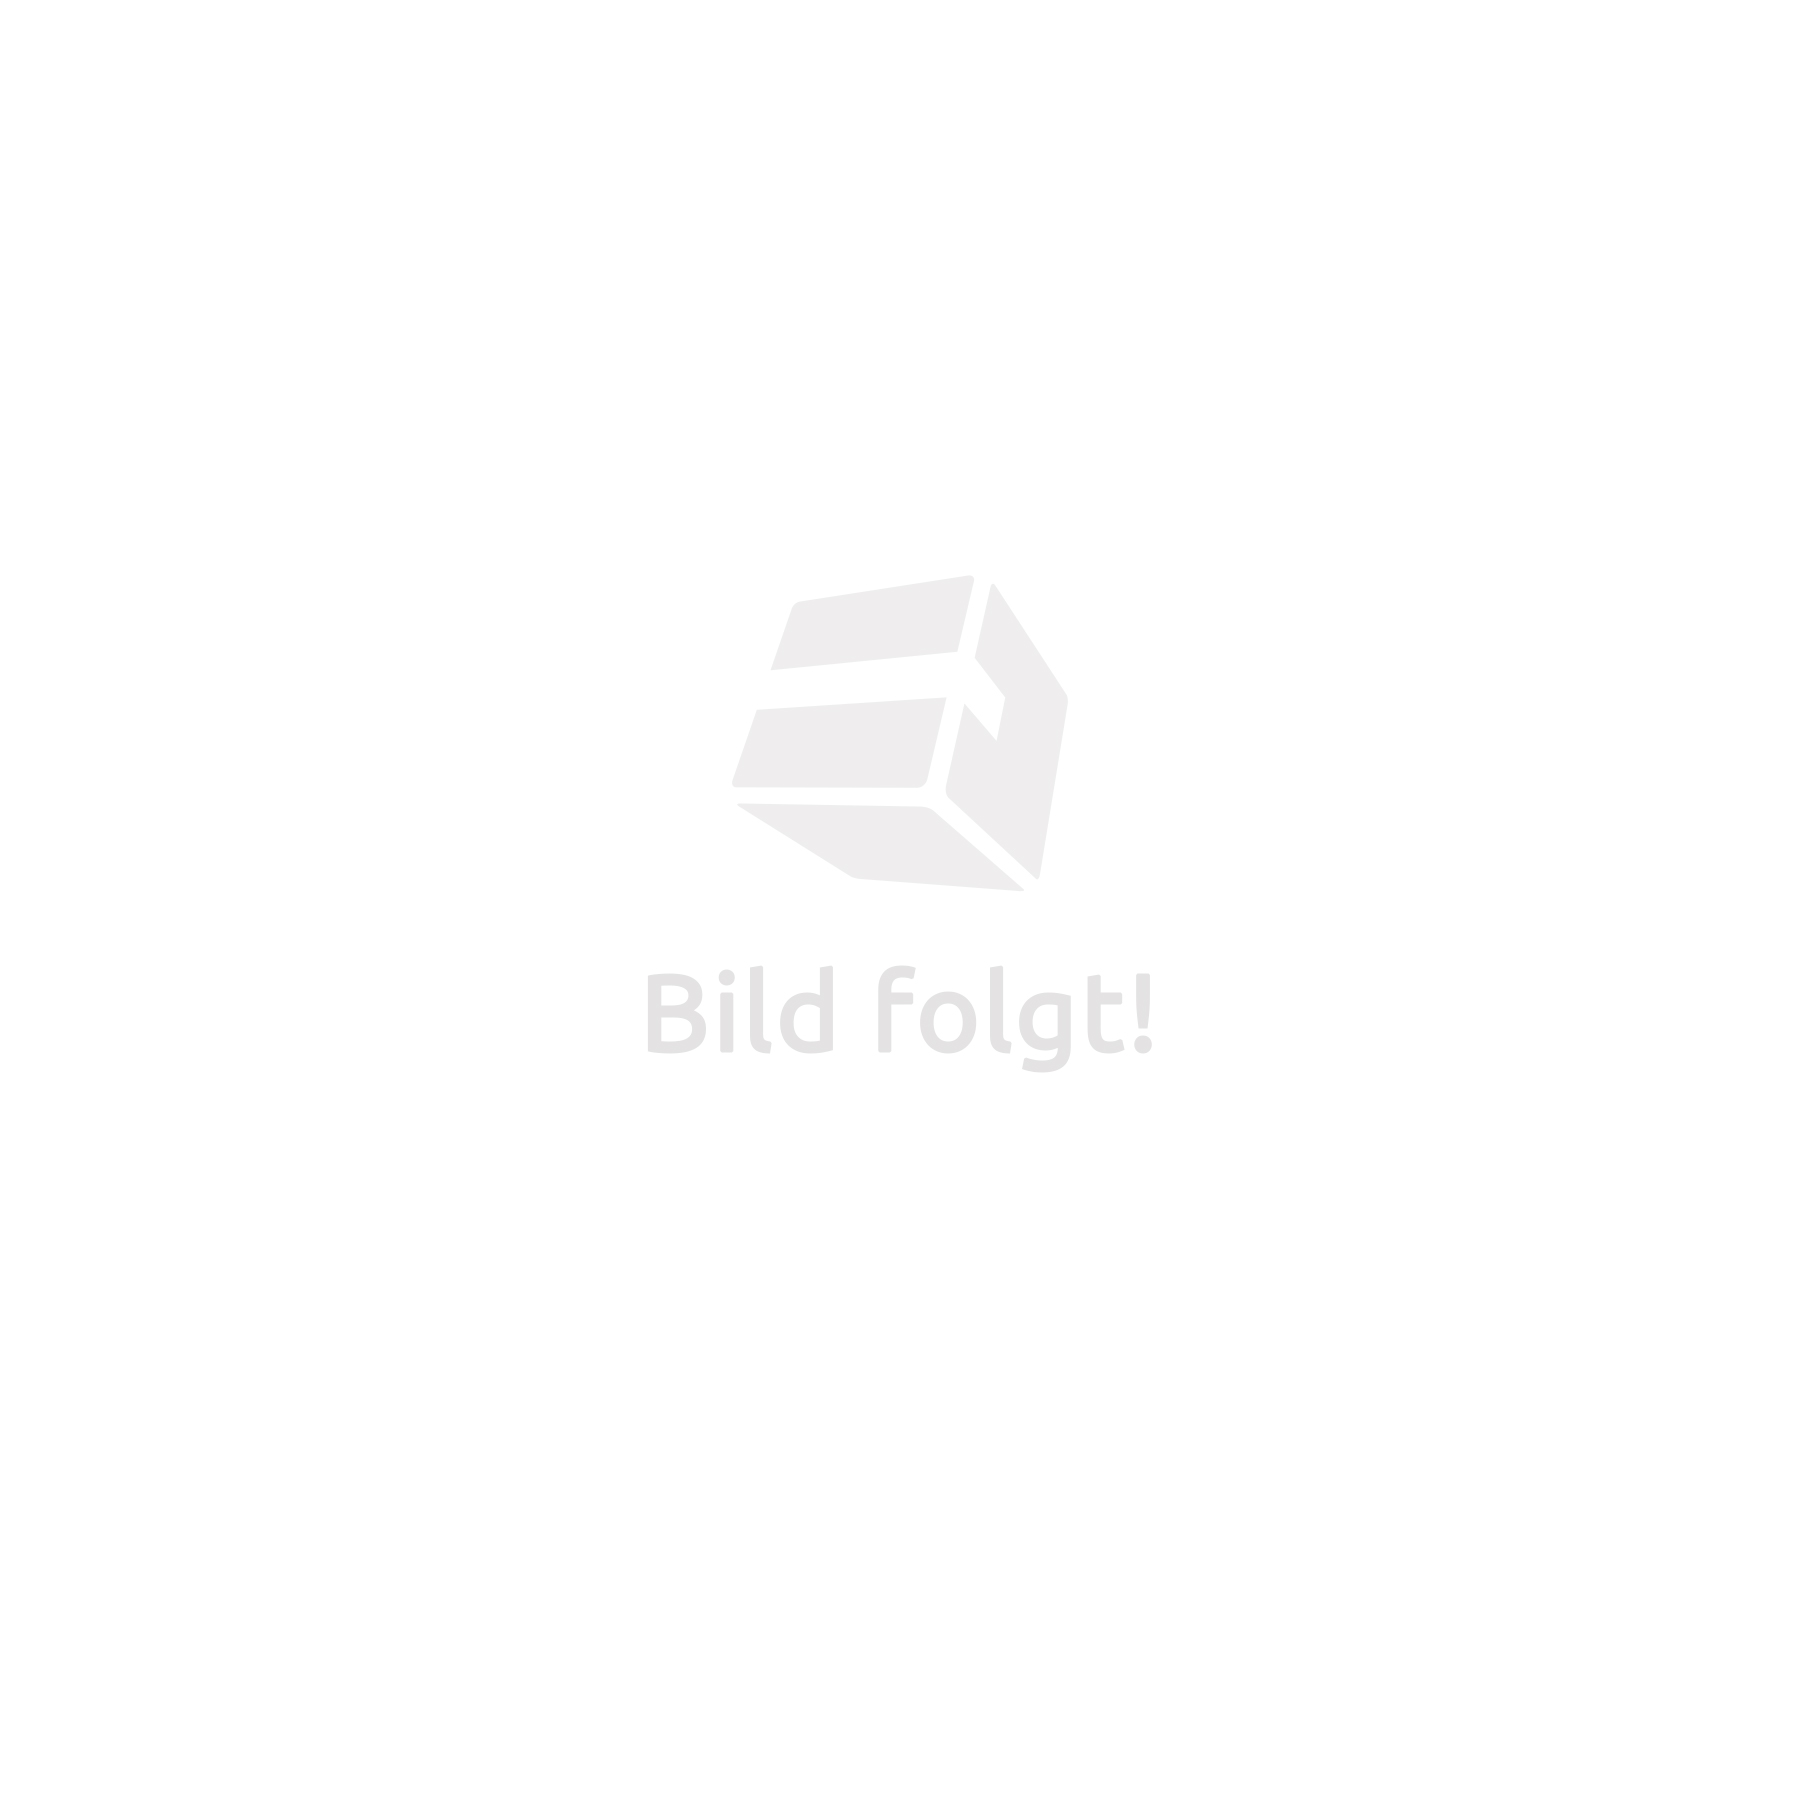 Film Anti Regards PVC en Rouleau pour Clôture + Fixations 70 m gris anthracite